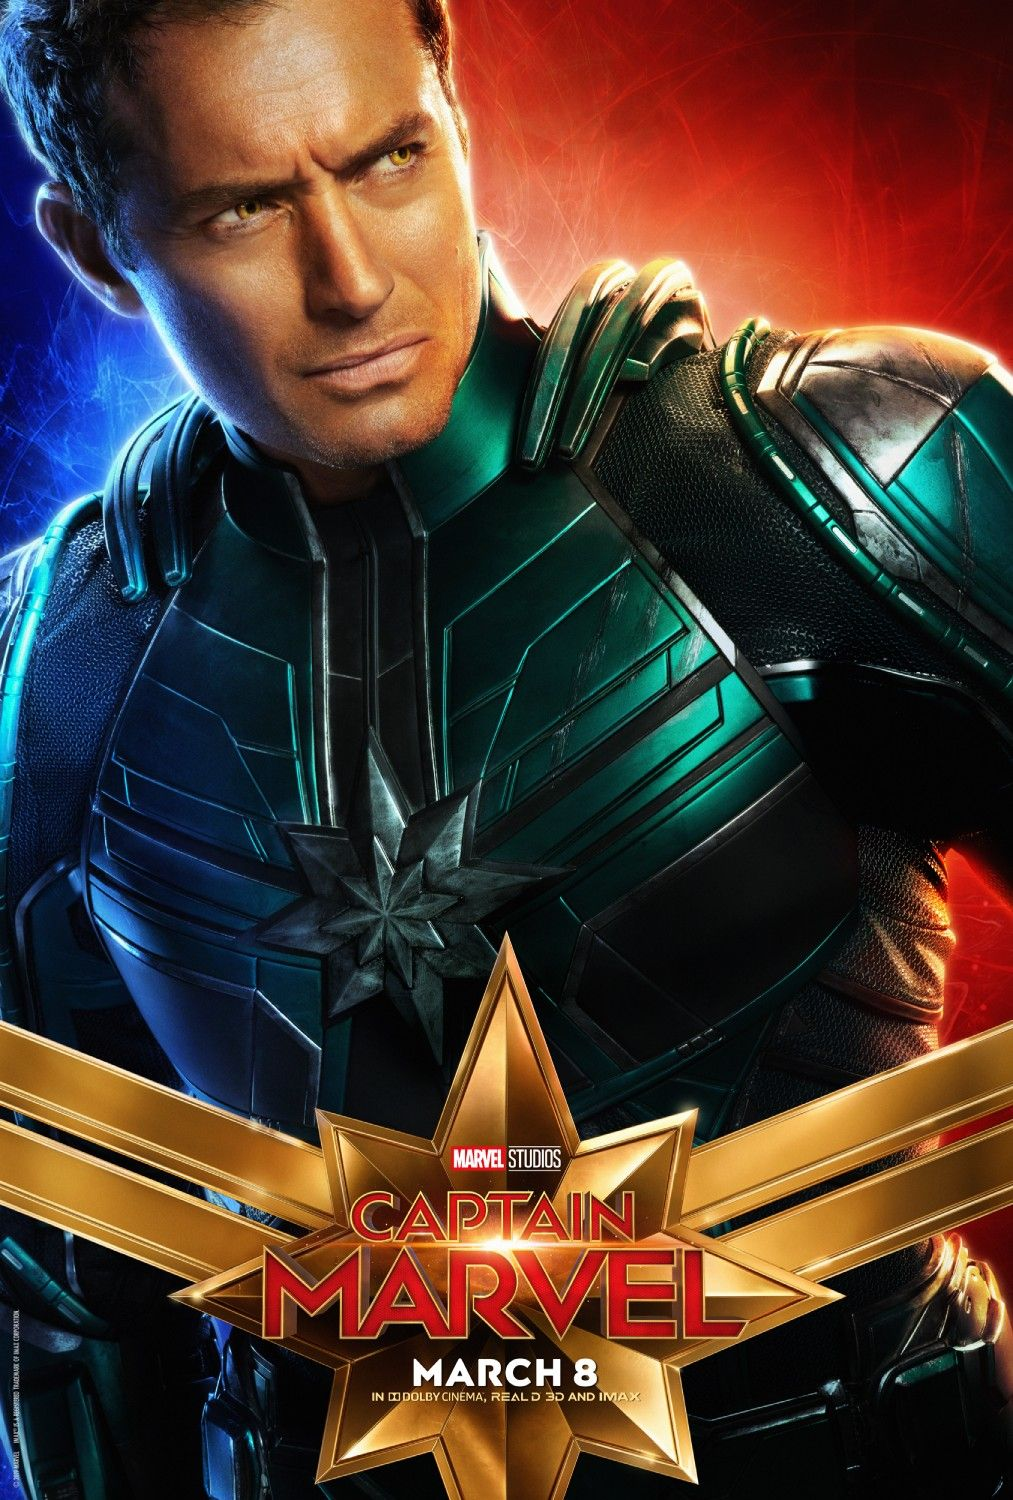 Captain-Marvel-Jude-Law-Poster.jpg?q=50&